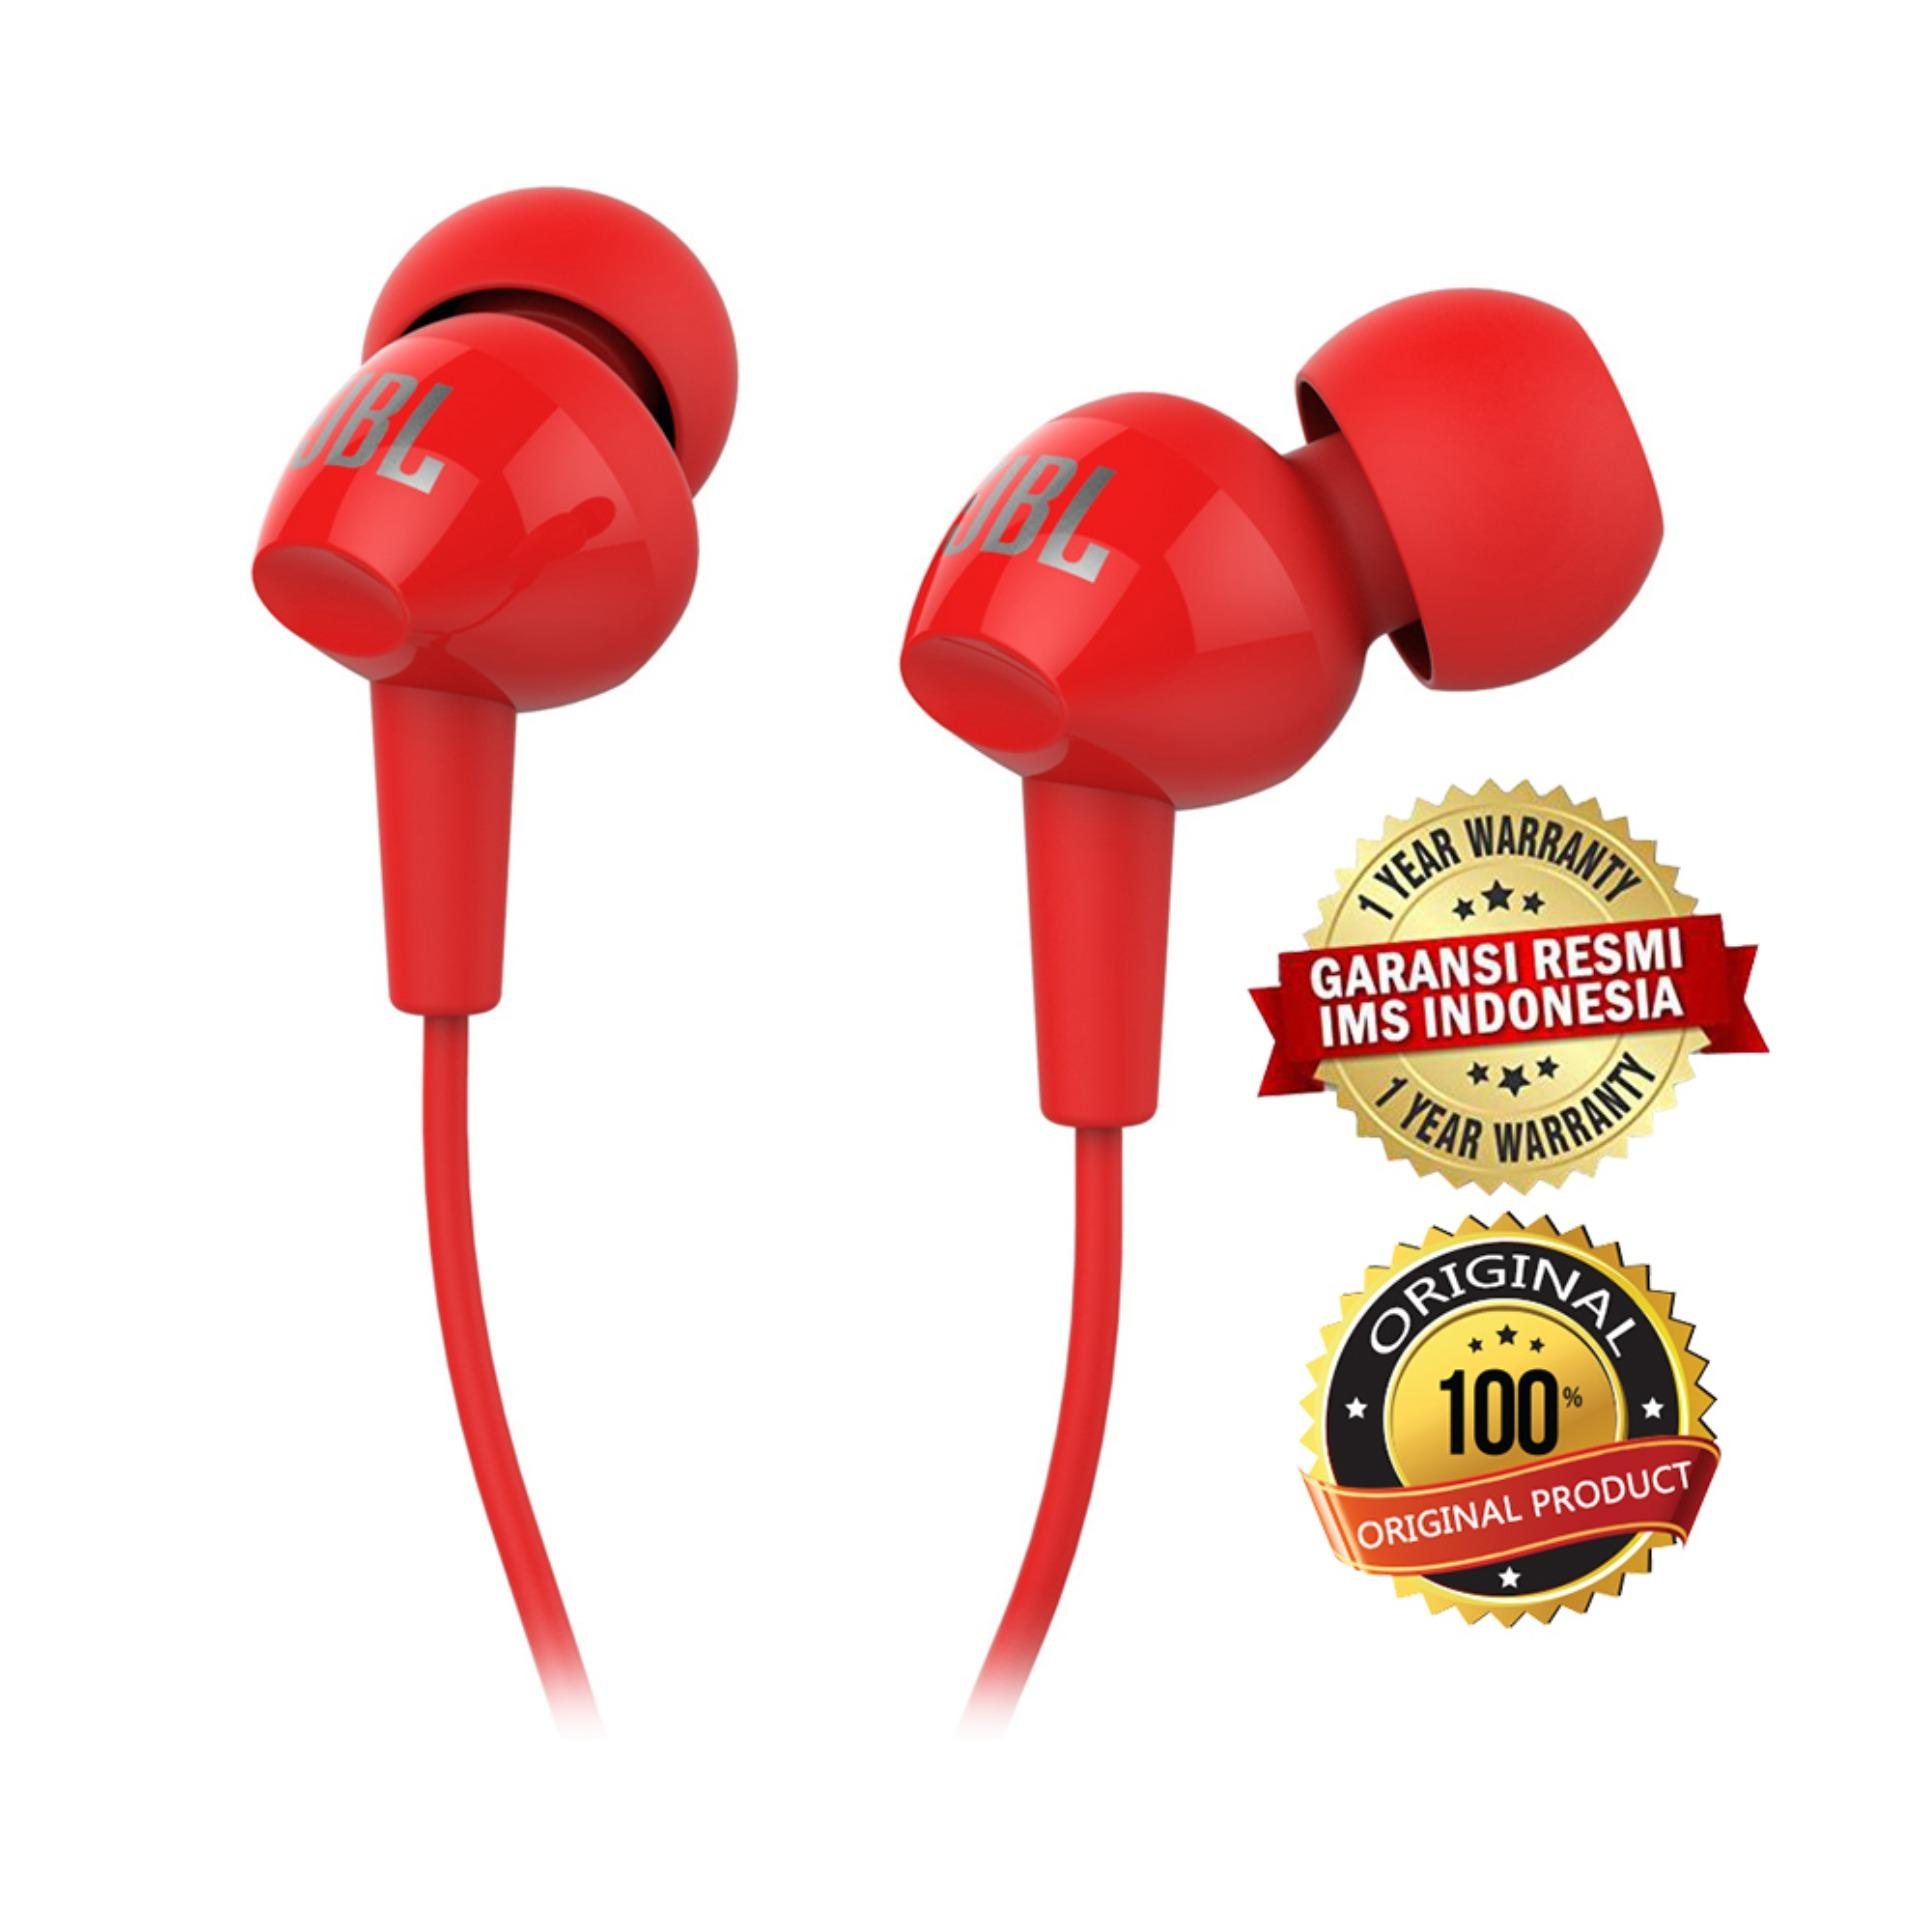 Jbl Wired In Ear Headphone C100si Original T110 With Pure Bass Microphone And Flat Cable Earphone Garansi Ims Bkn Headset